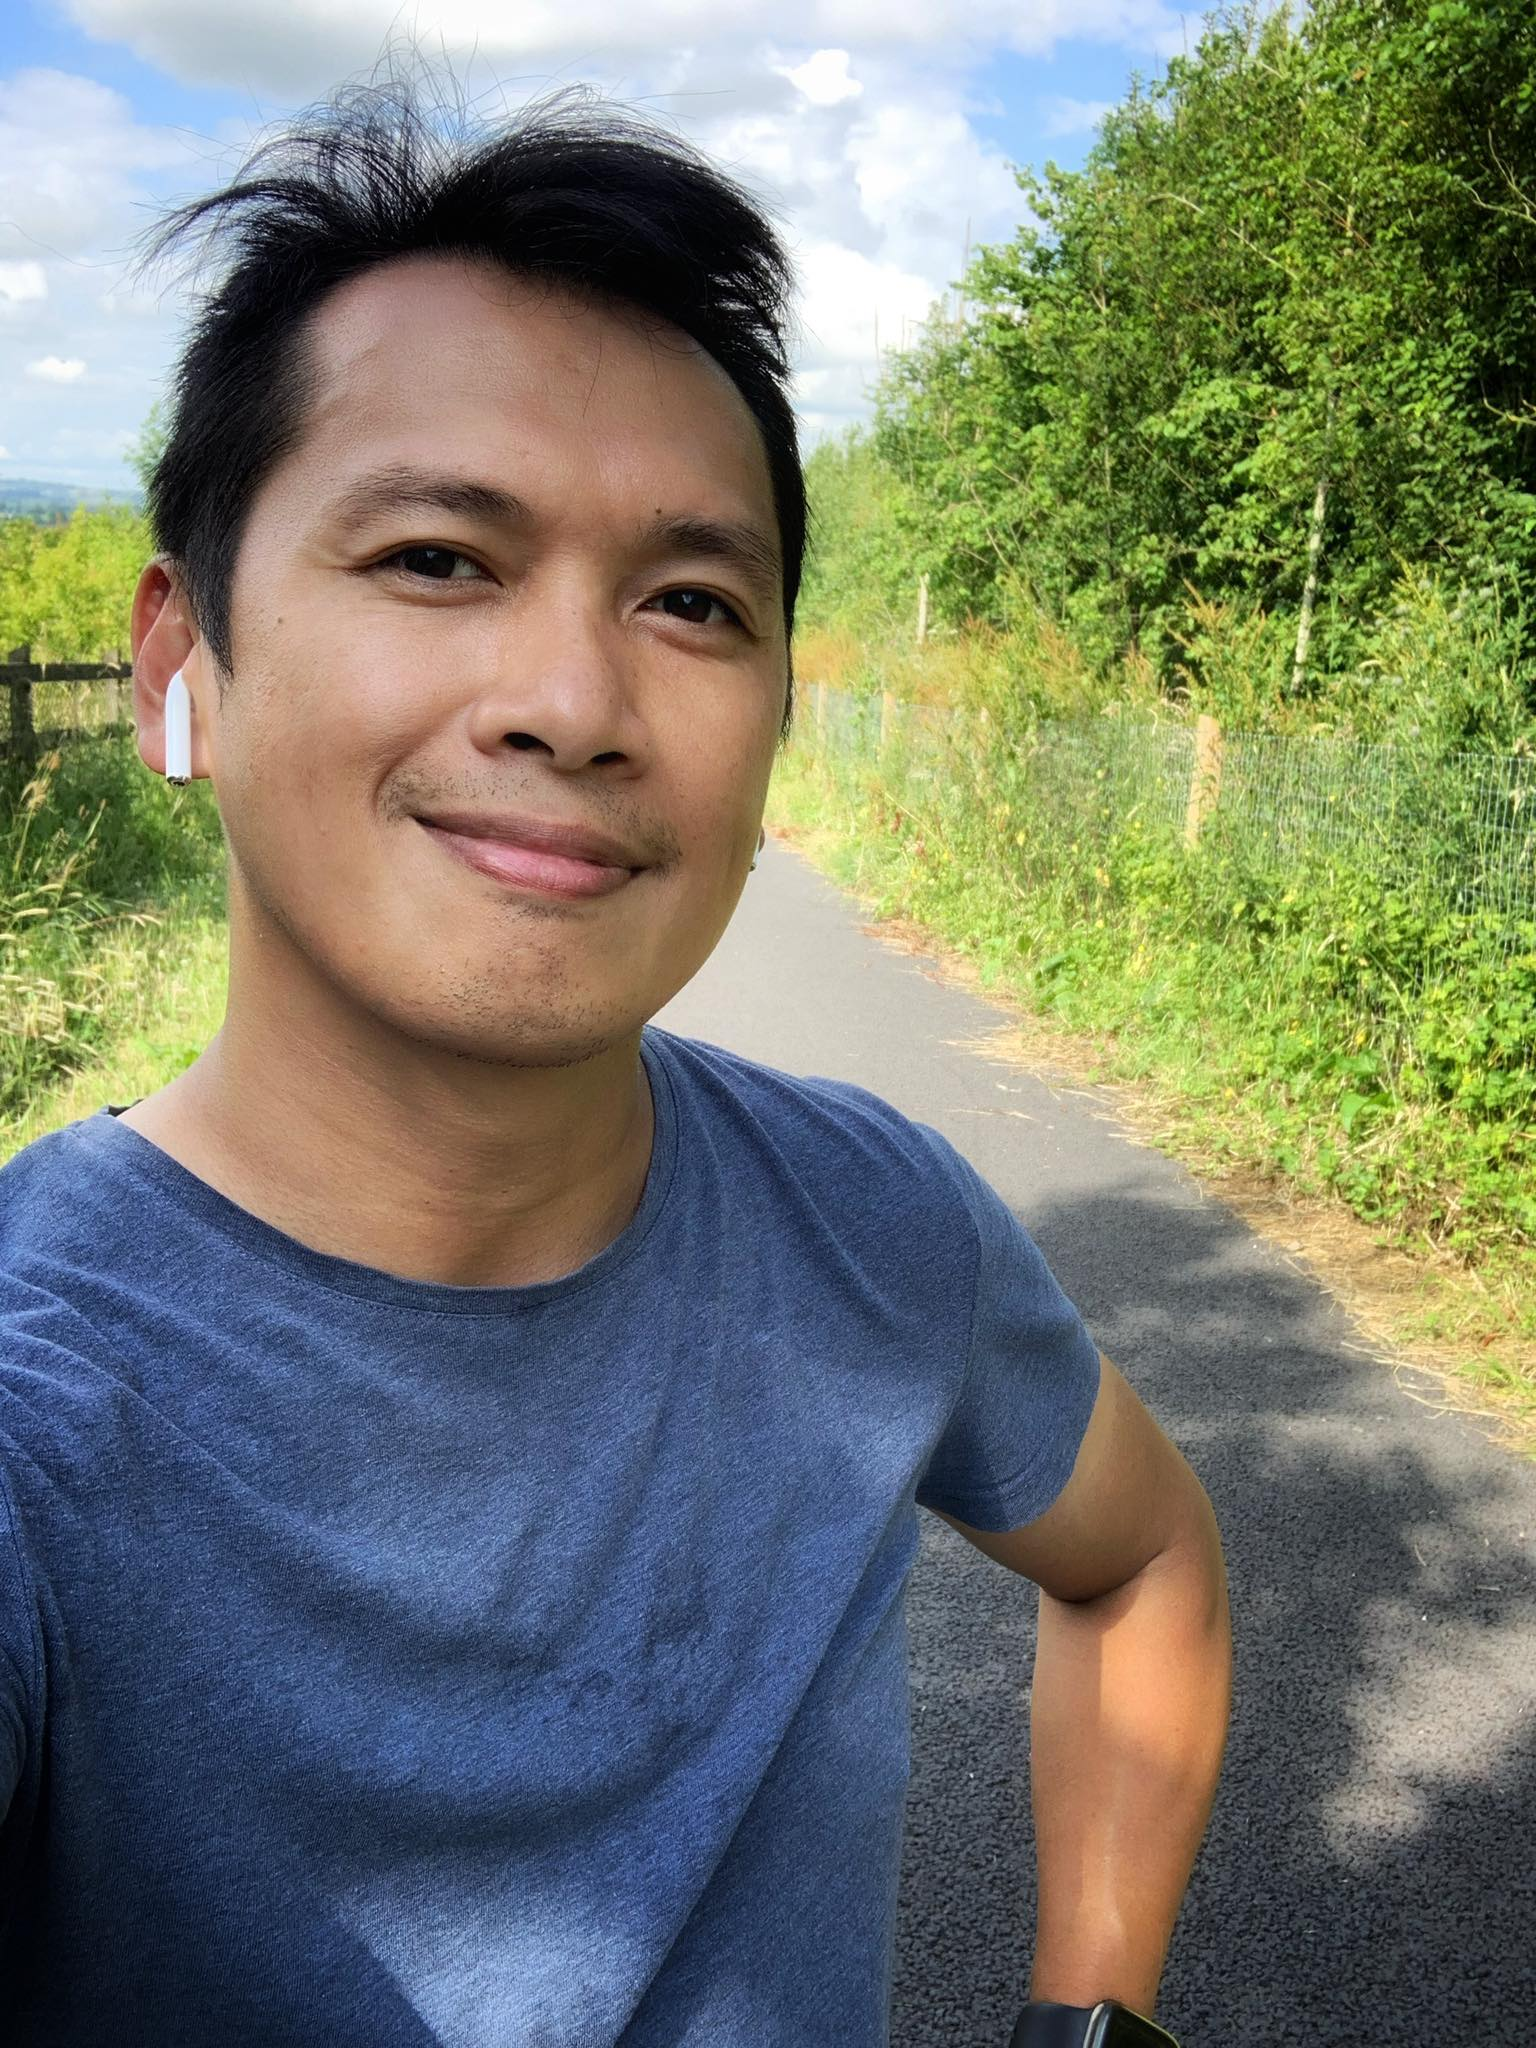 A man smiling on a country road during his run